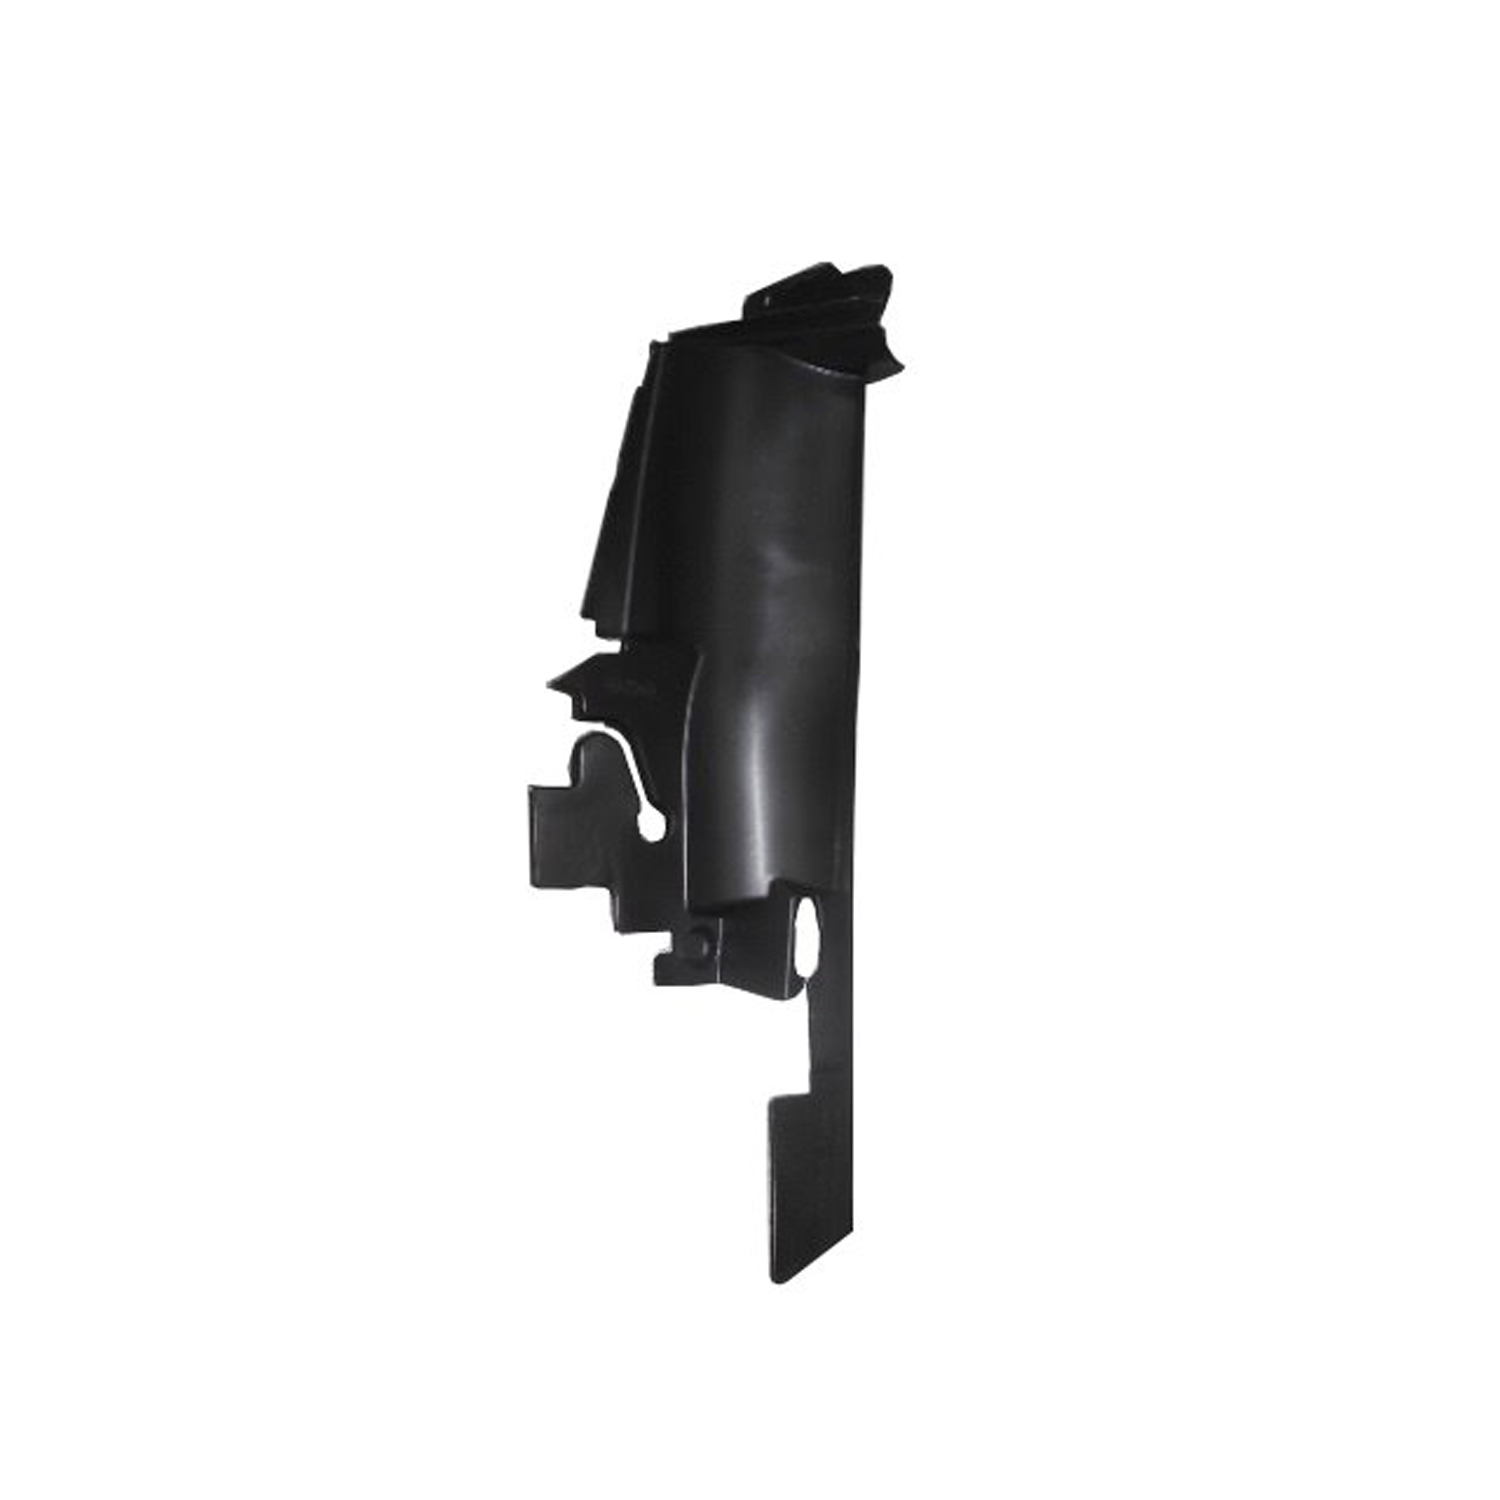 Driver Side Radiator Support For 2014-2015 Jeep Grand Cherokee Black Side panel